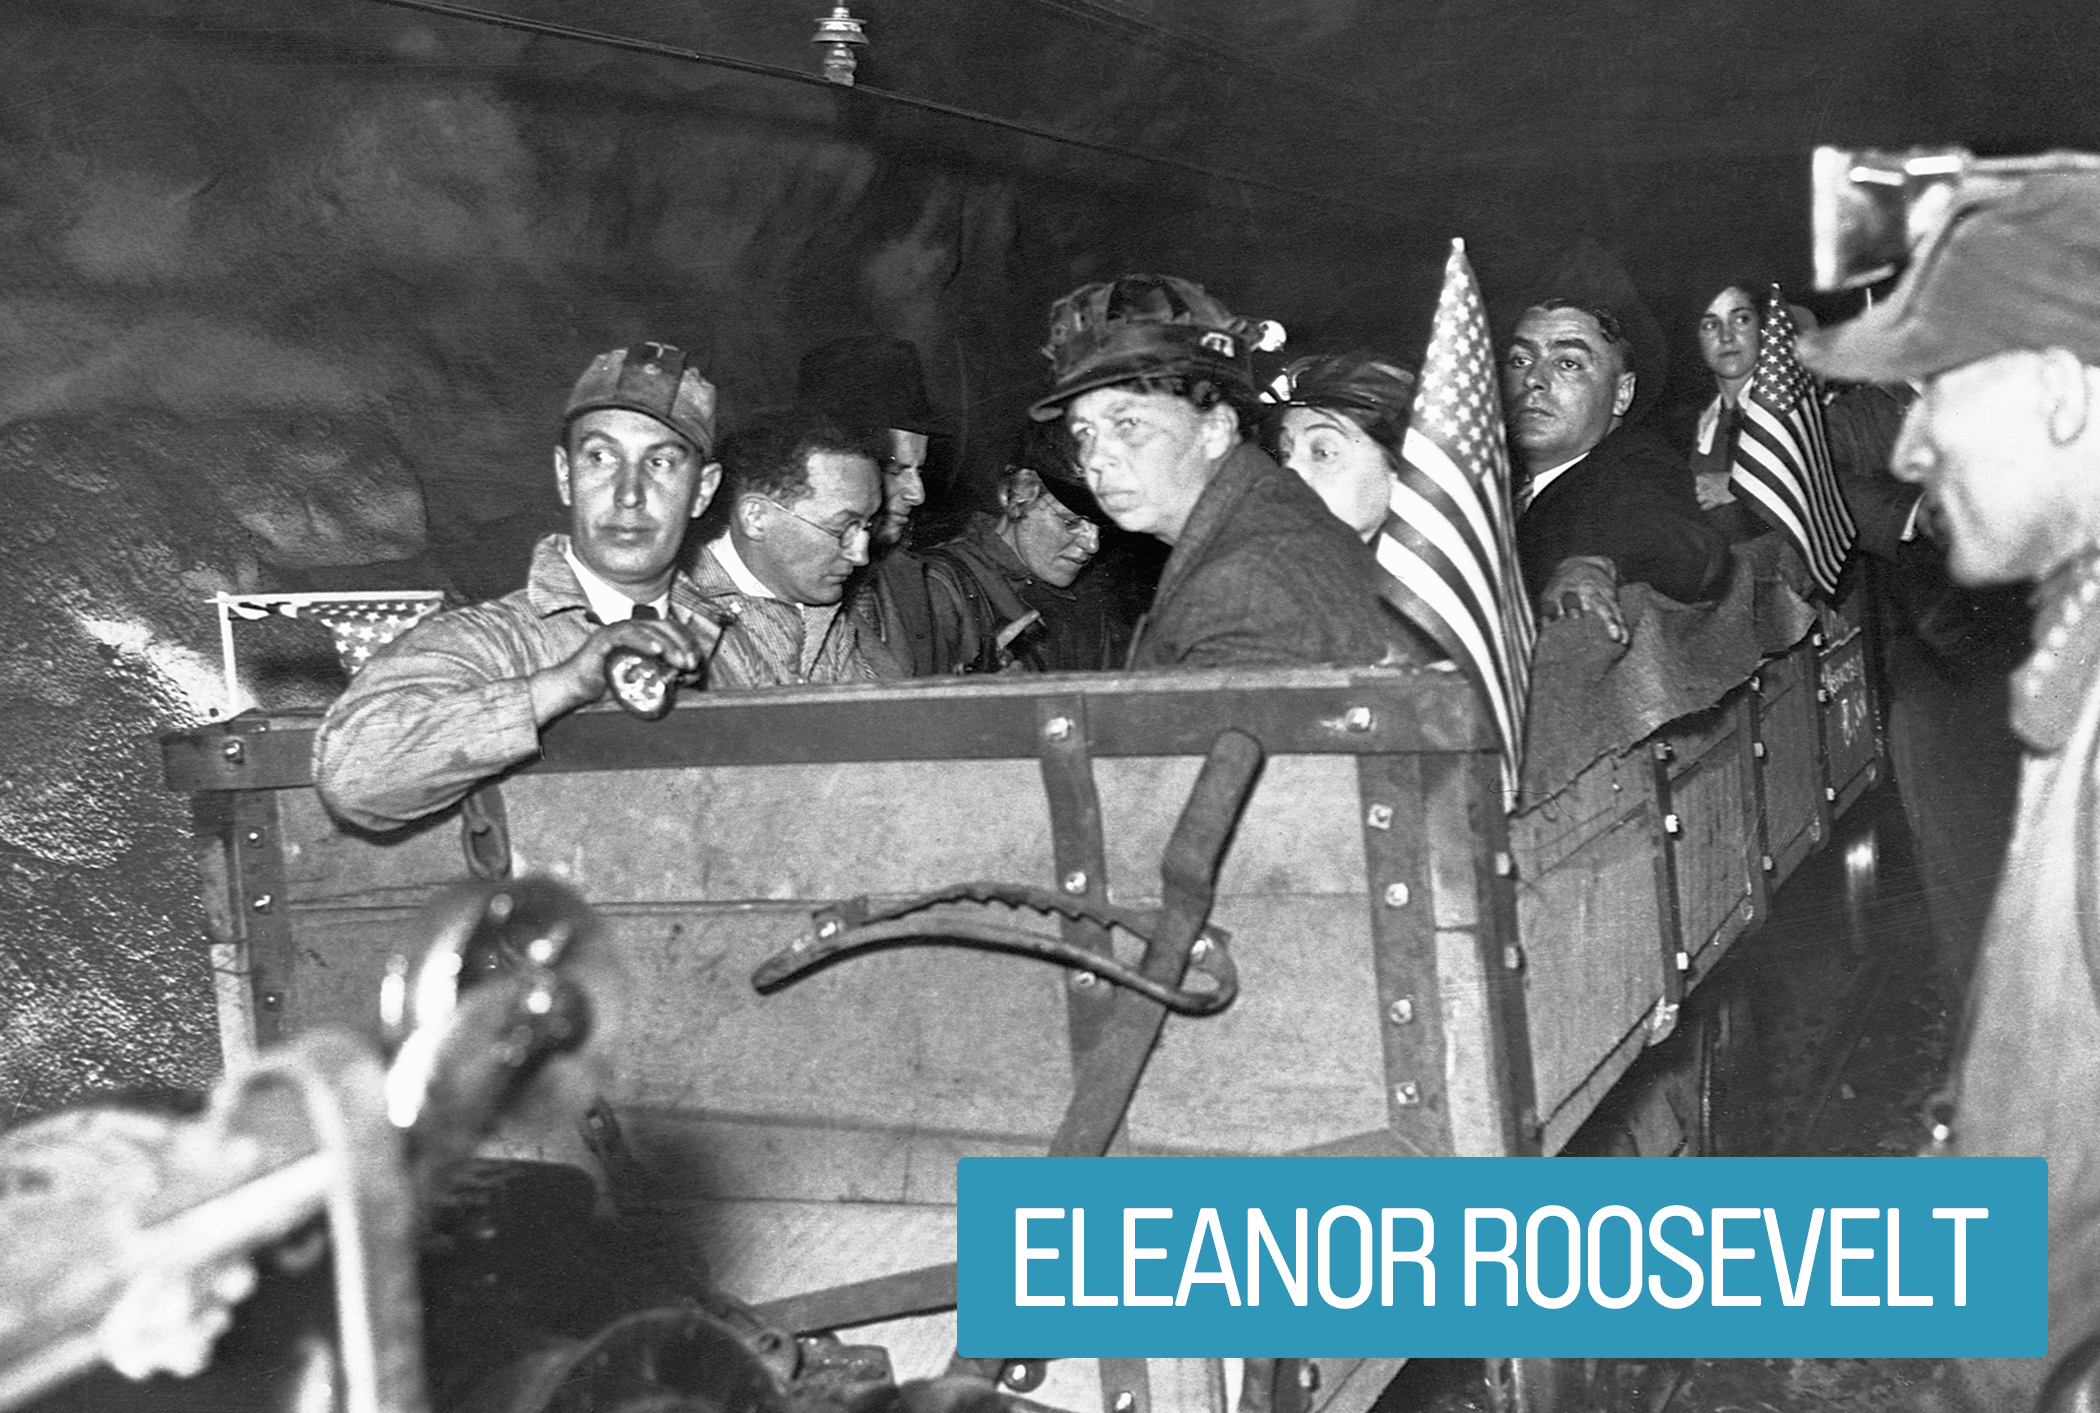 "Eleanor Roosevelt inspected social and economic reform programs associated with The New Deal, ensuring their effectiveness and equal treatment for women, youths, African-Americans and coal miners.                                         During World War II, she rallied wives of the enlisted to work on the home front, popularizing ""Rosie-the-Riveters."""